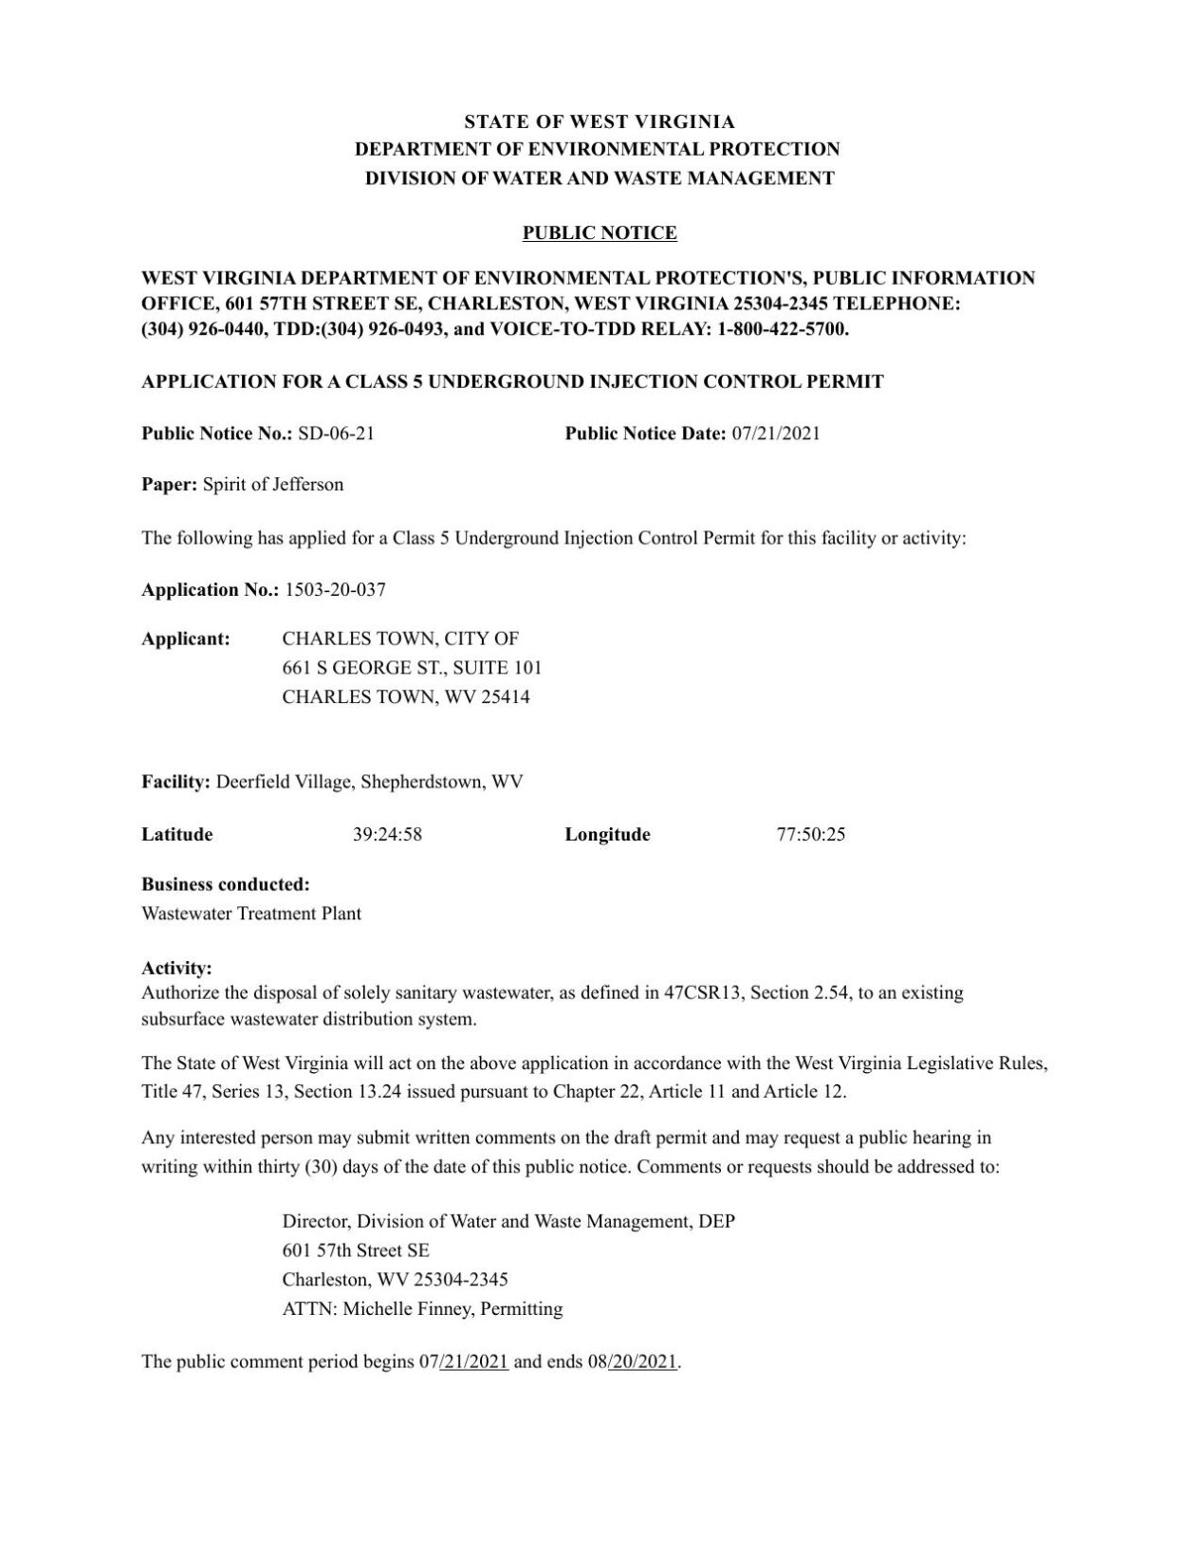 Public Notice 2 WV Dept of Environmental Protection